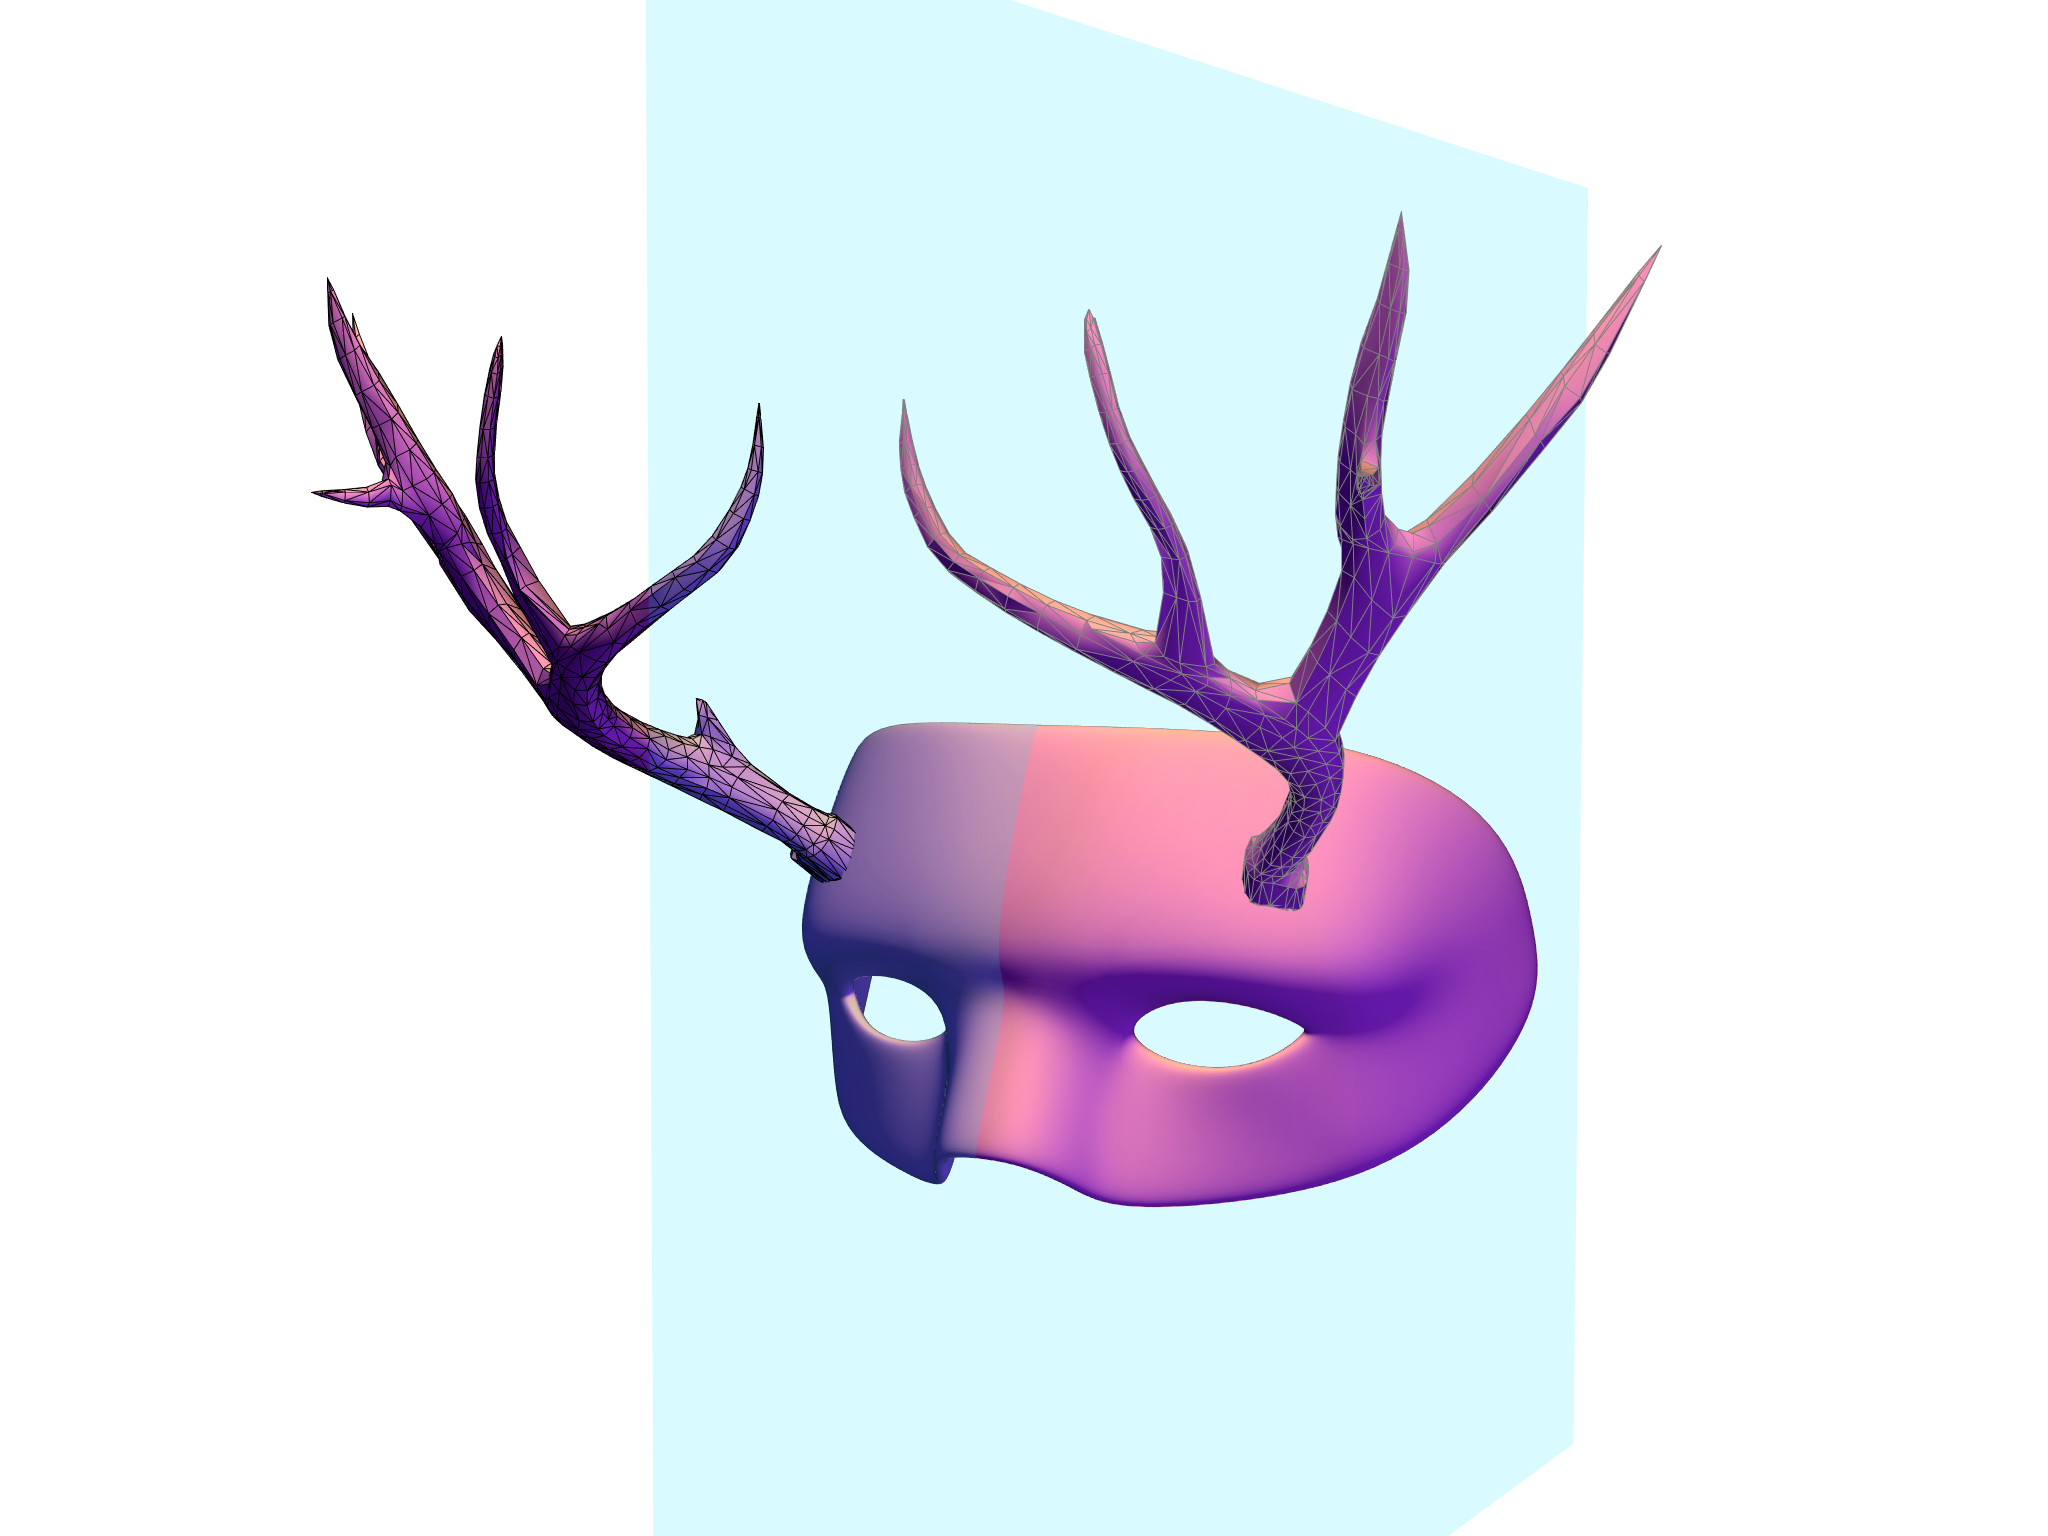 Deer Halloween Mask  - 3D design by designneta on Oct 24, 2017